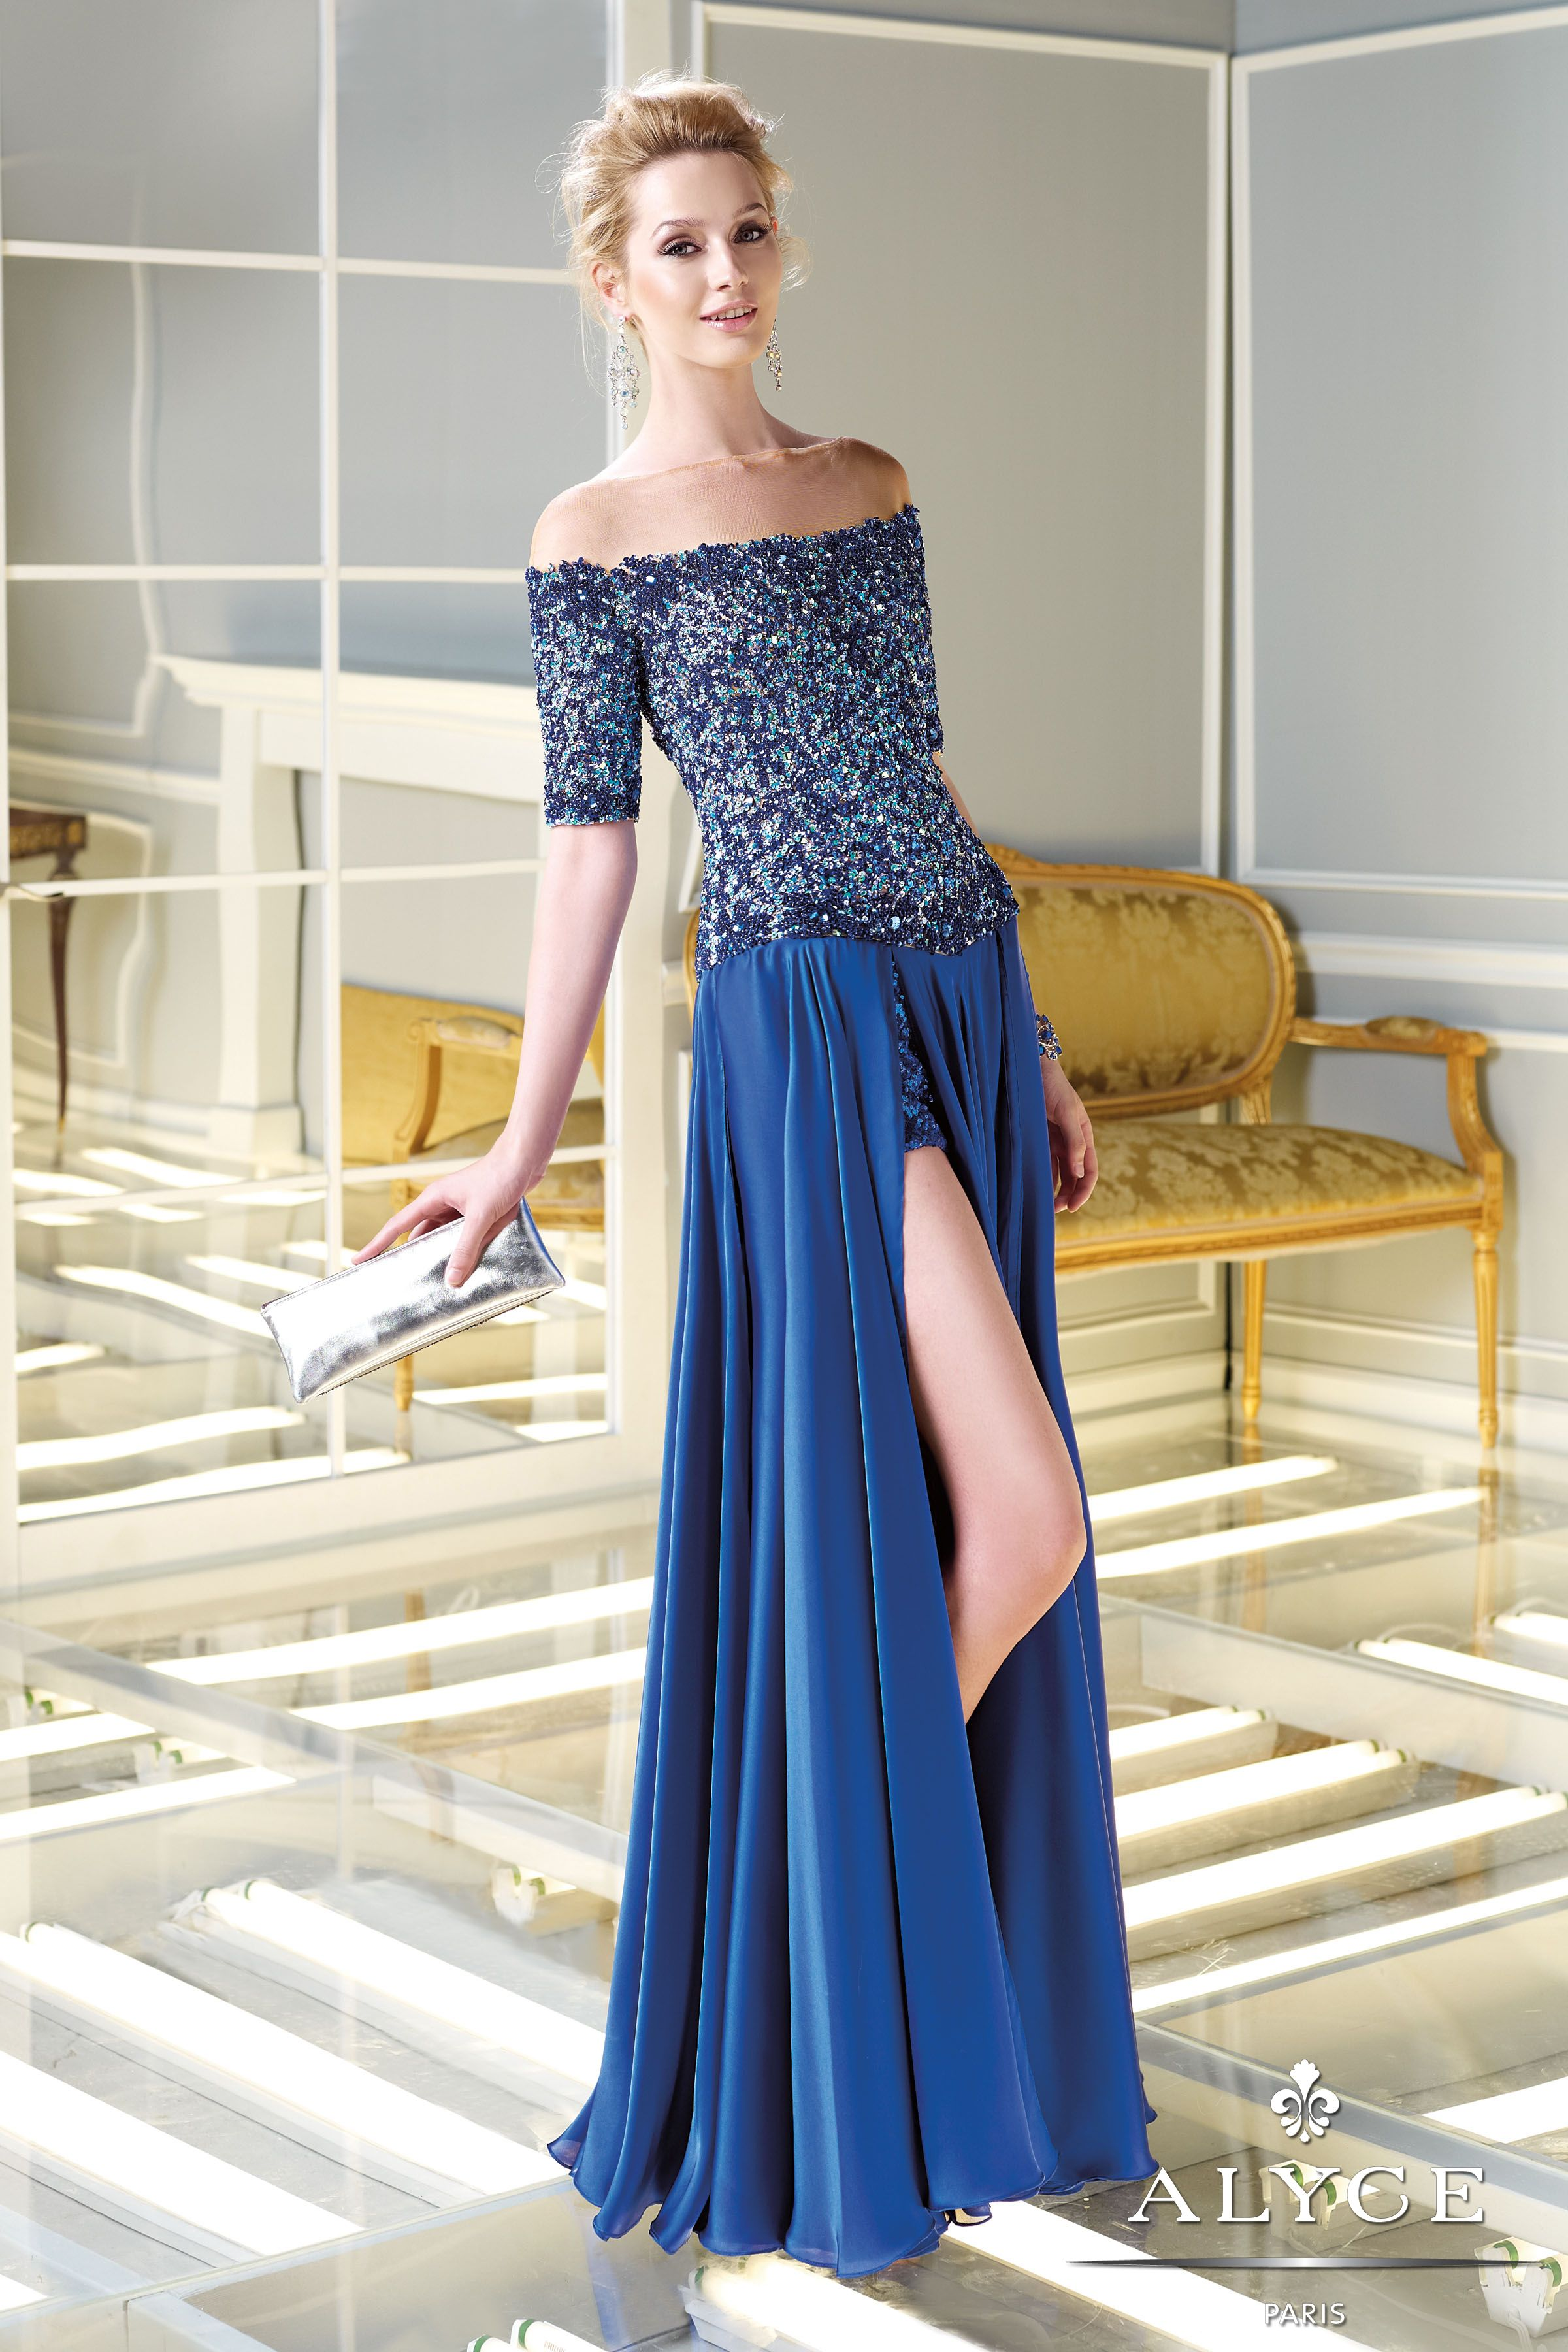 Perfect gown perfect gownperfect fithappy customer pinterest